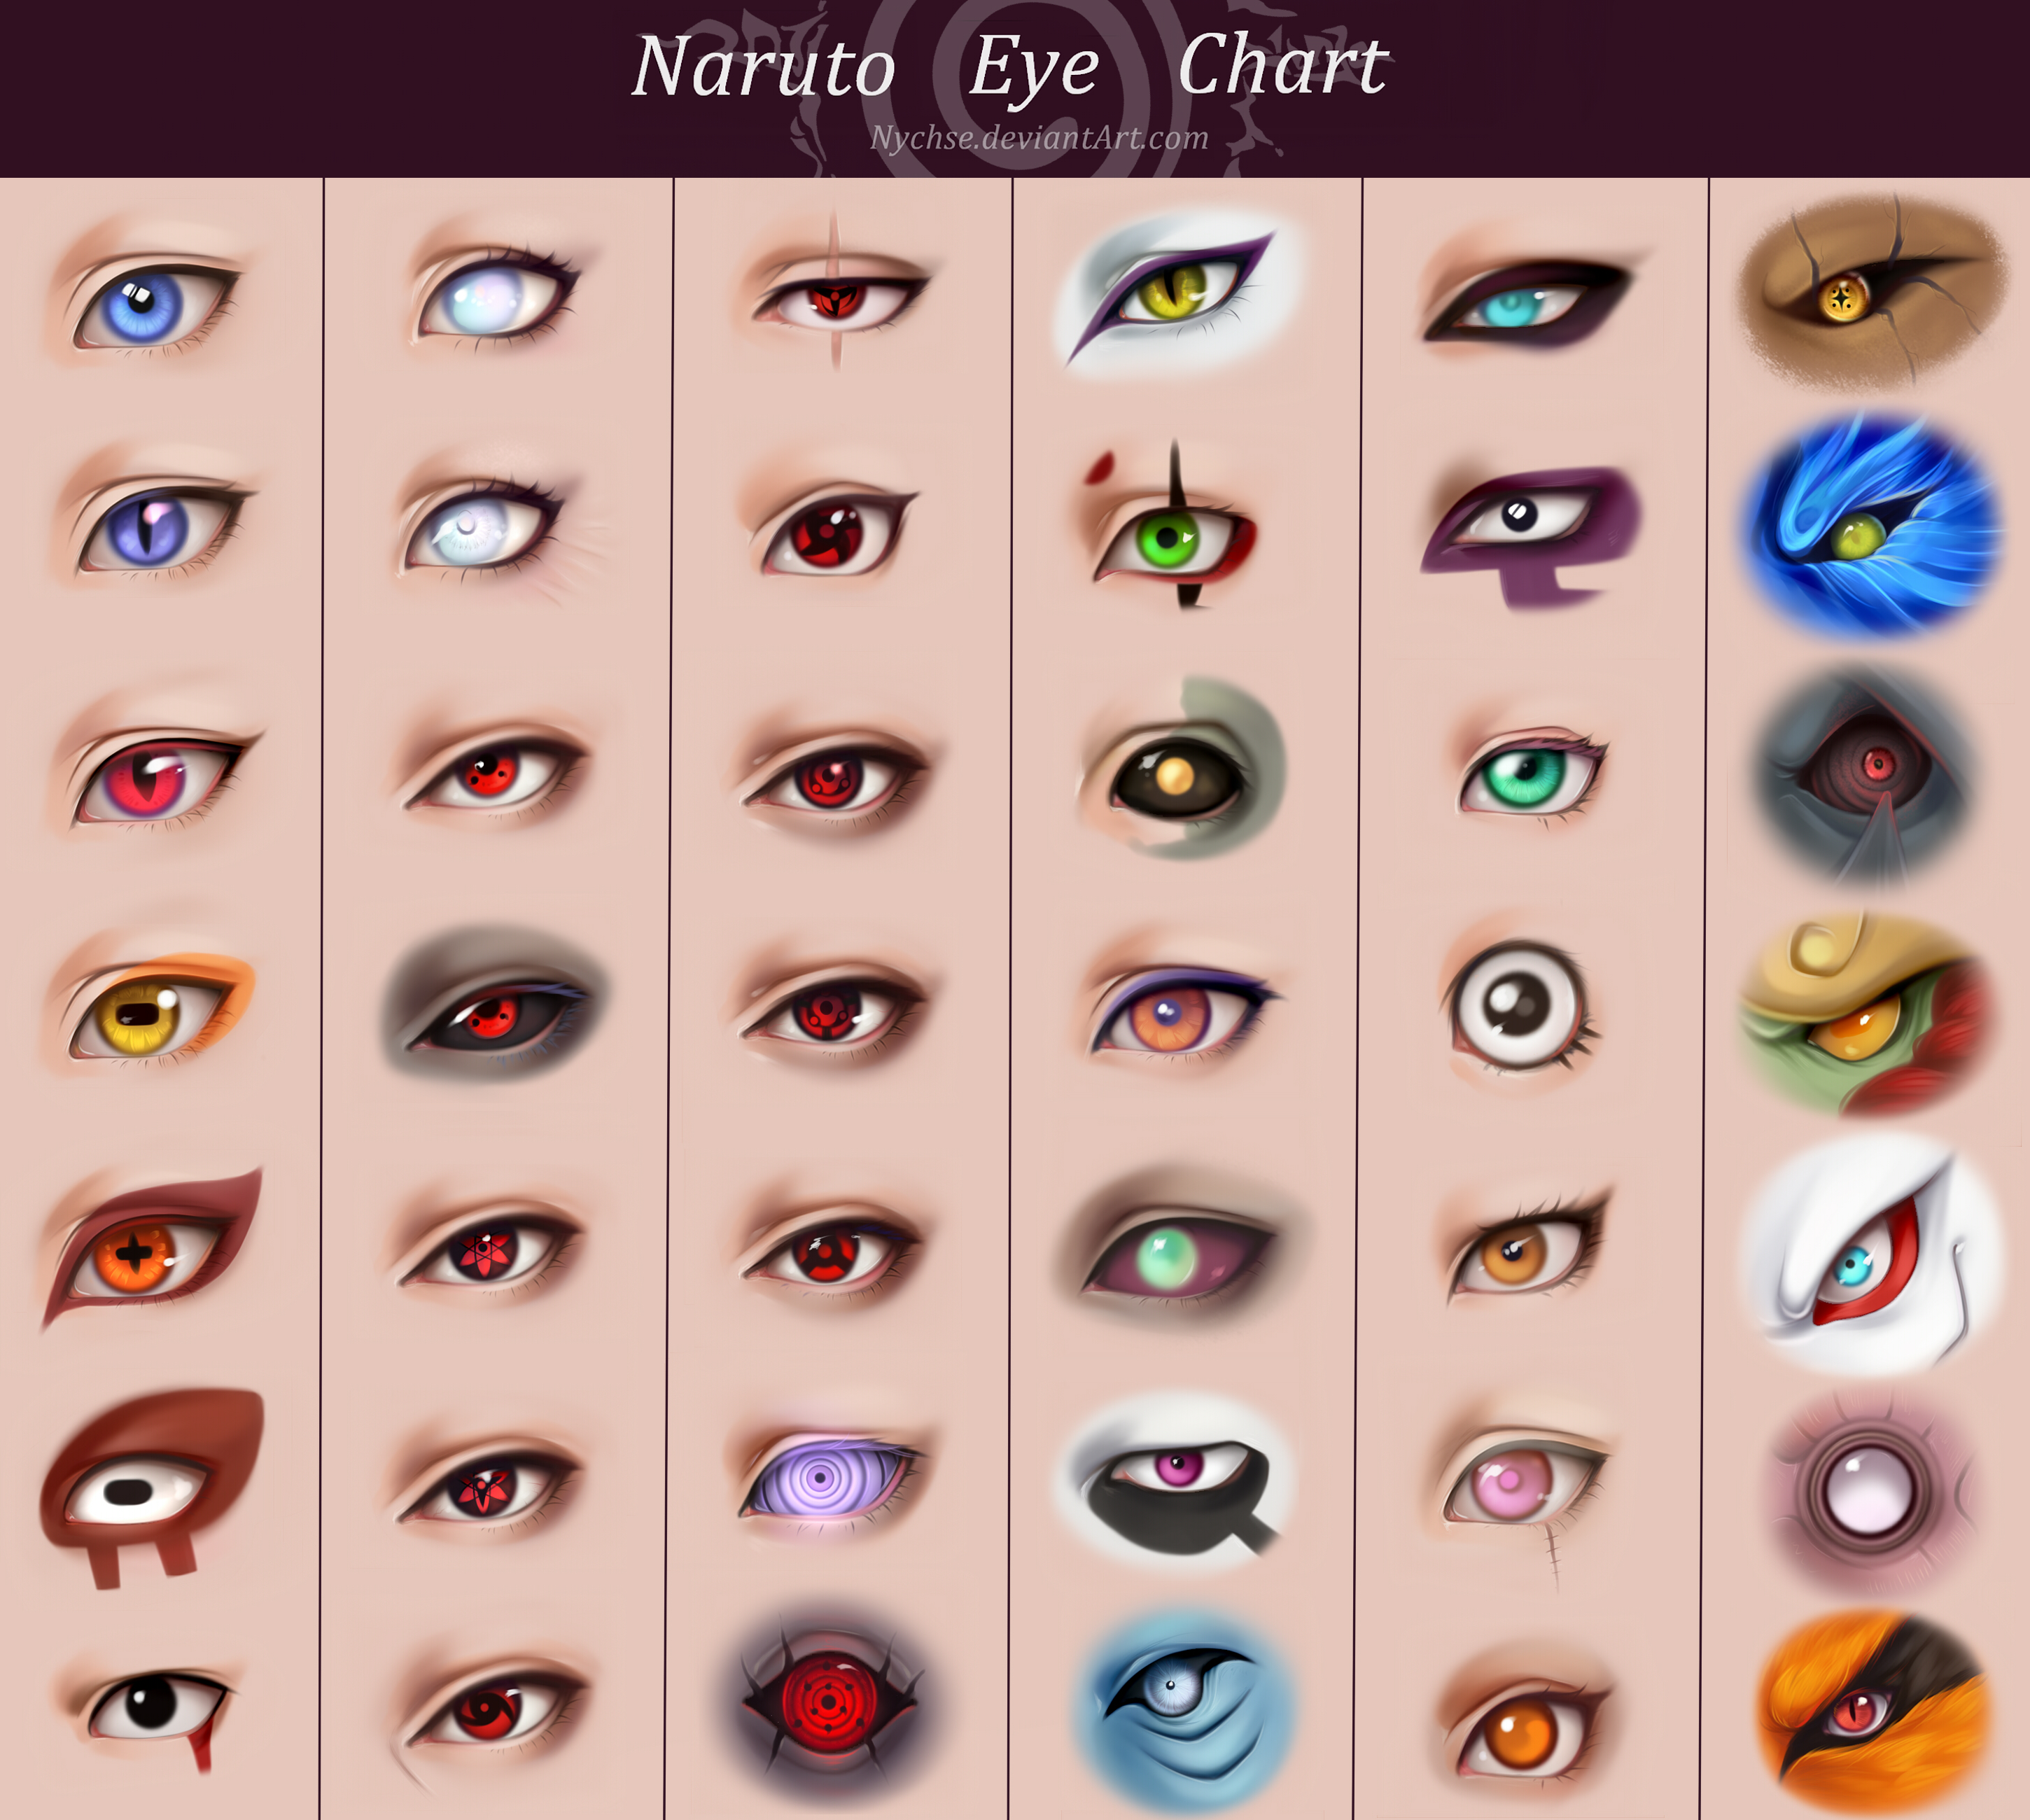 Image 1 naruto eye chart by nychseg for post 21396 daily eye chartfull resolution 2900 2600 geenschuldenfo Images